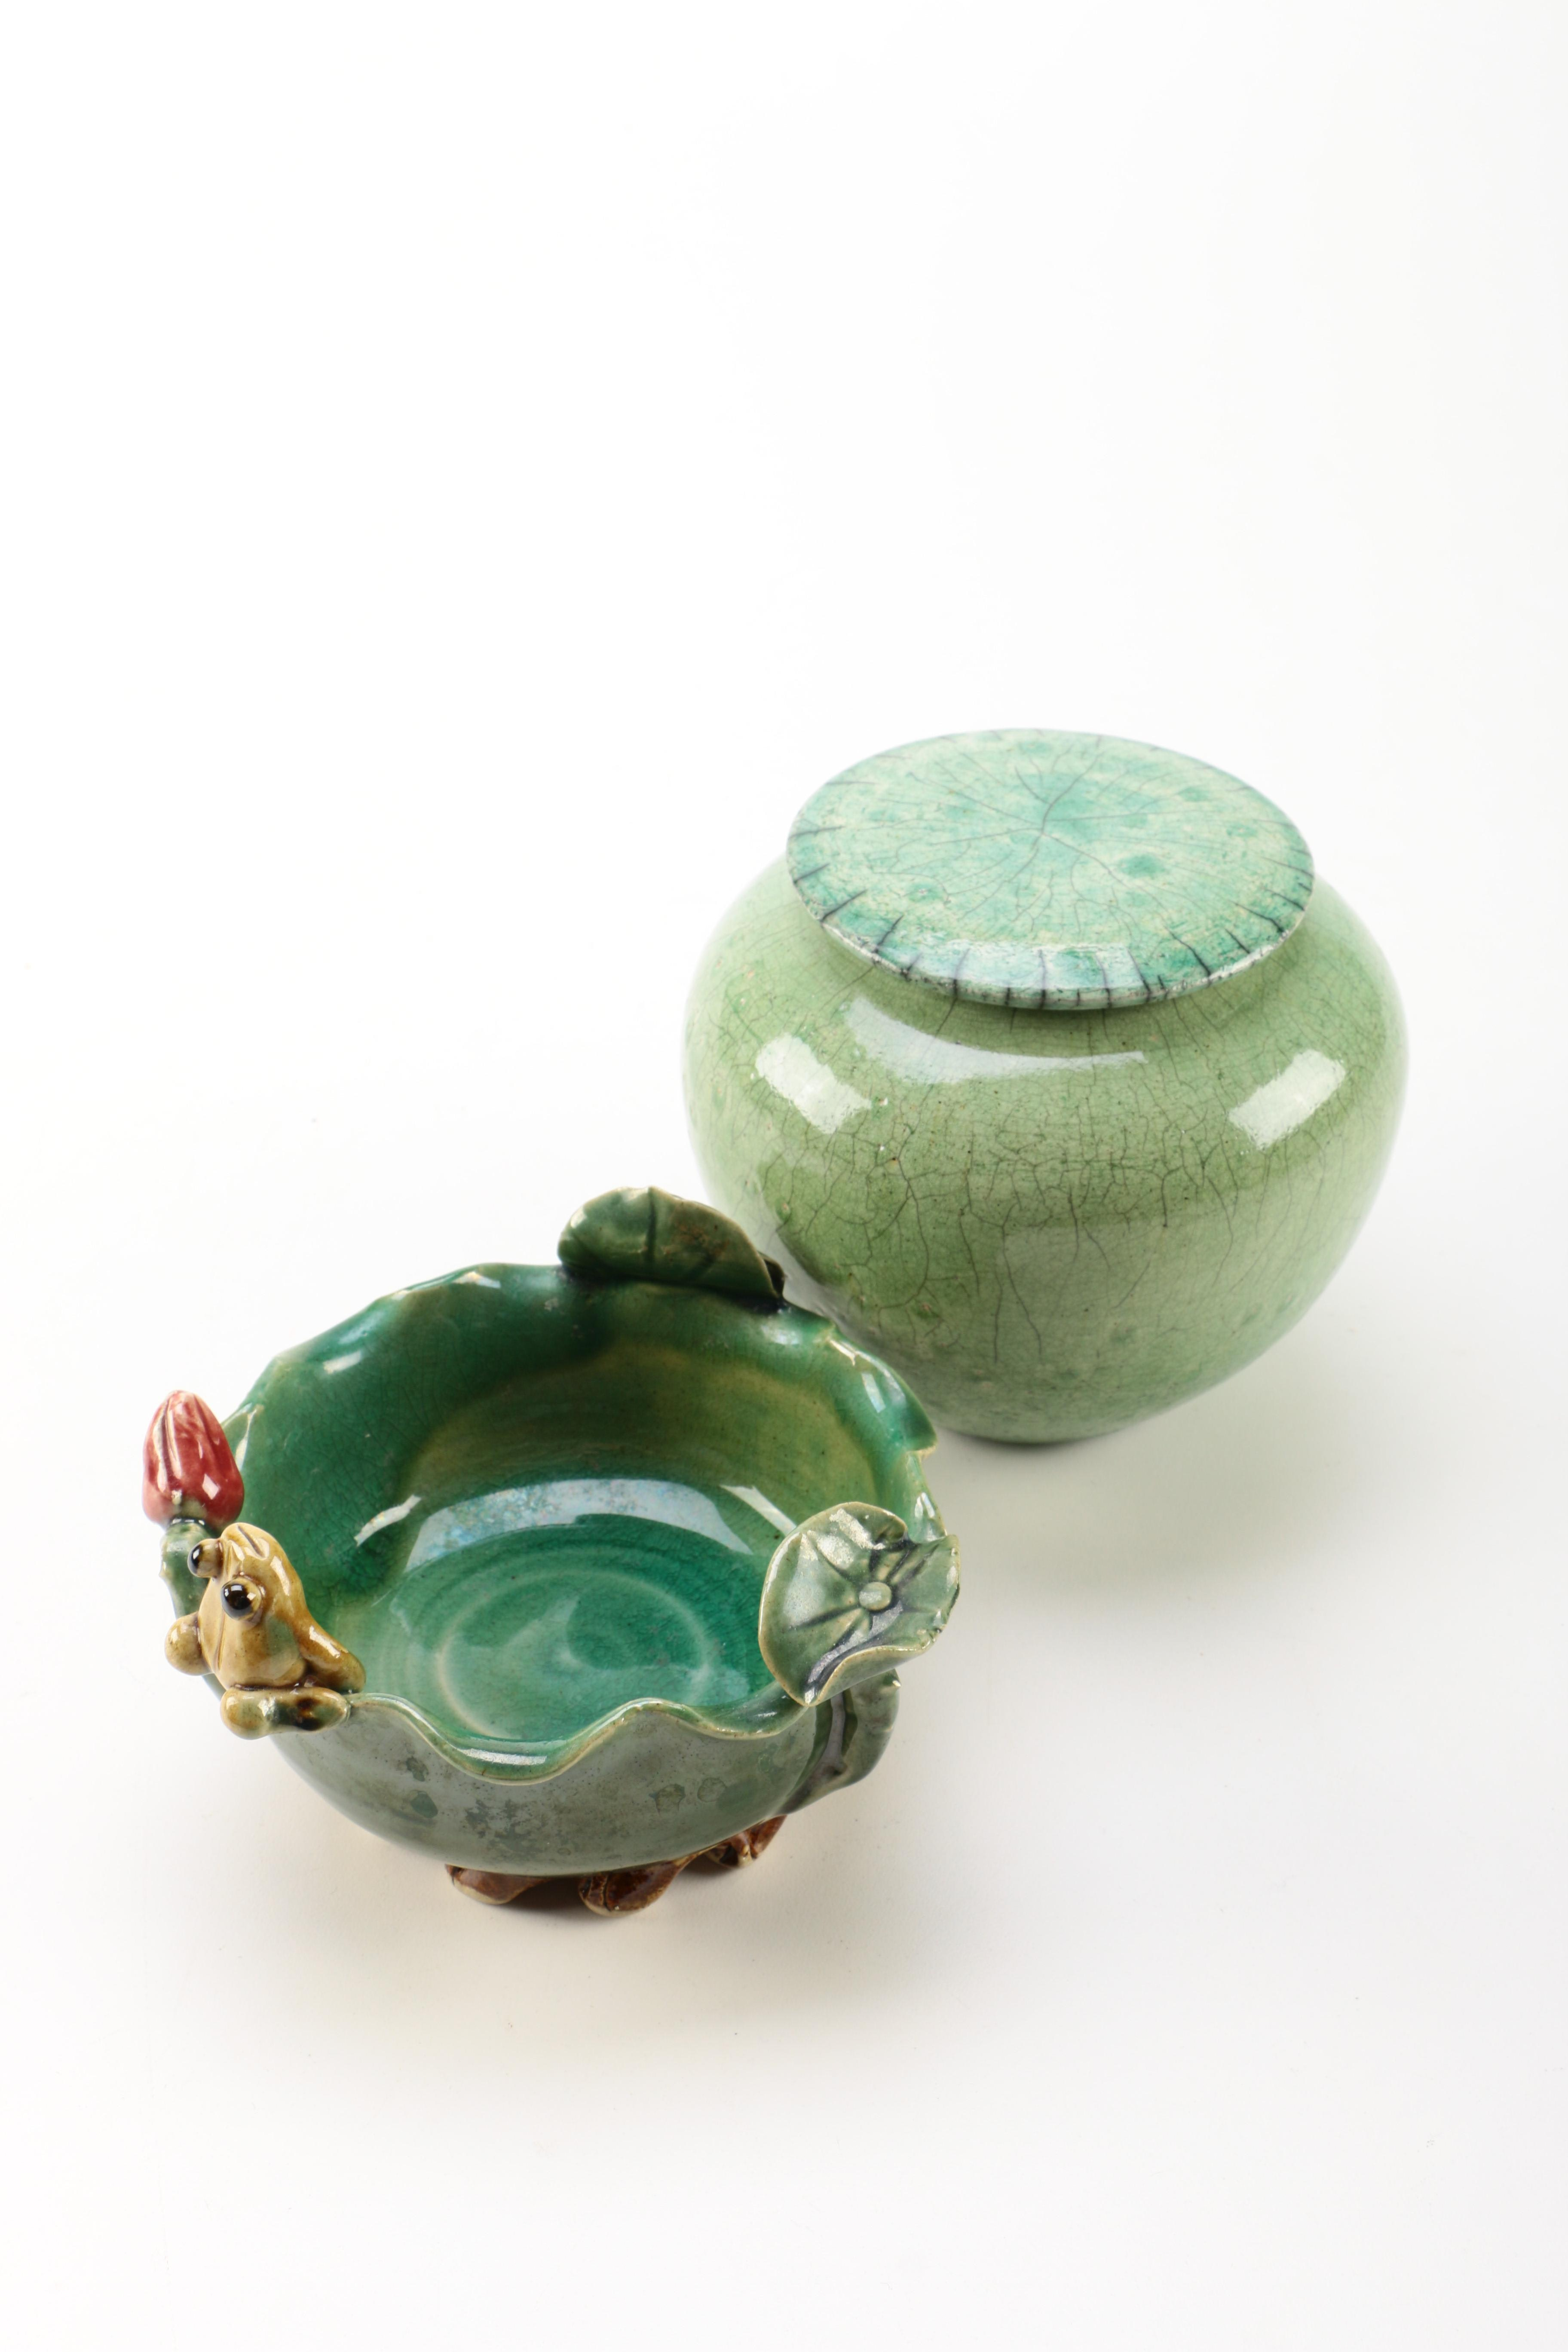 Two Asian Inspired Ceramic Vessels